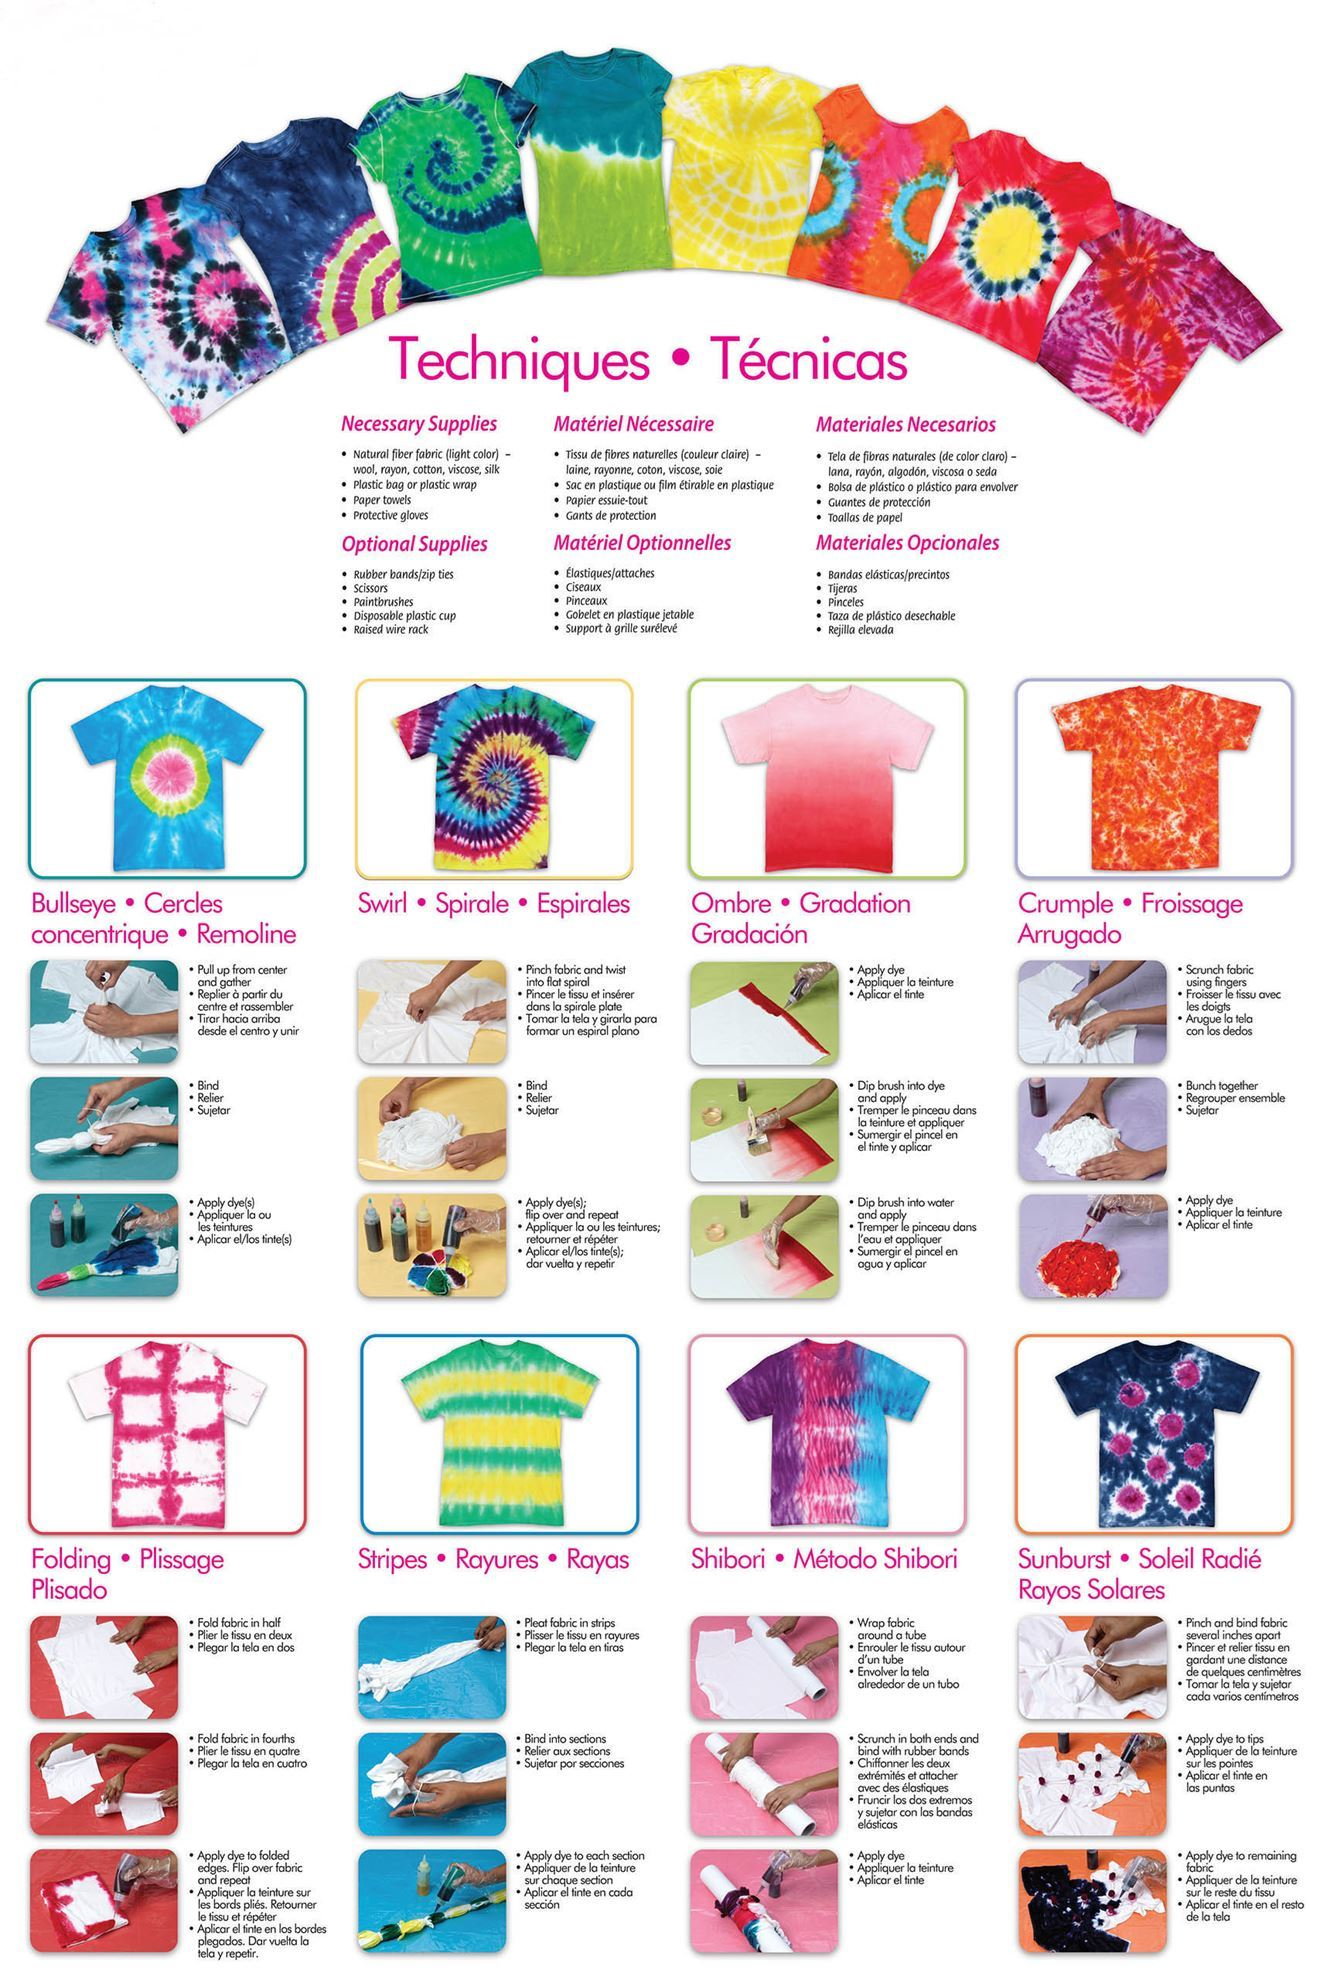 Paradise Punch 3-Color Tie-Dye Instructions